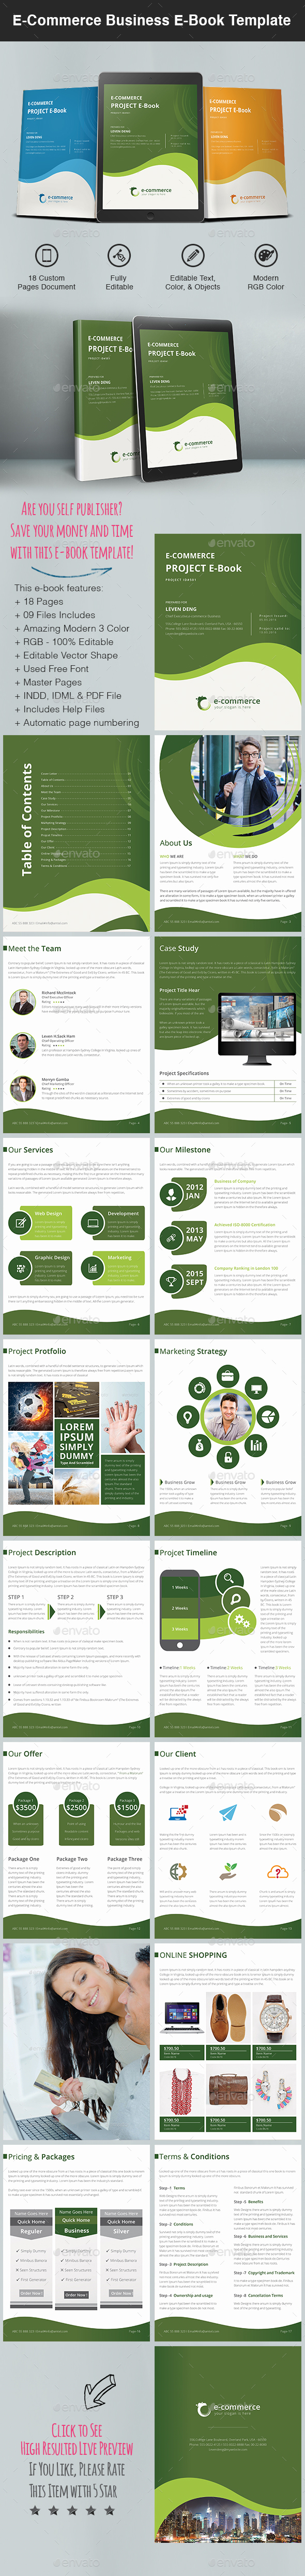 E-Commerce Business E-Book Template - Digital Books ePublishing